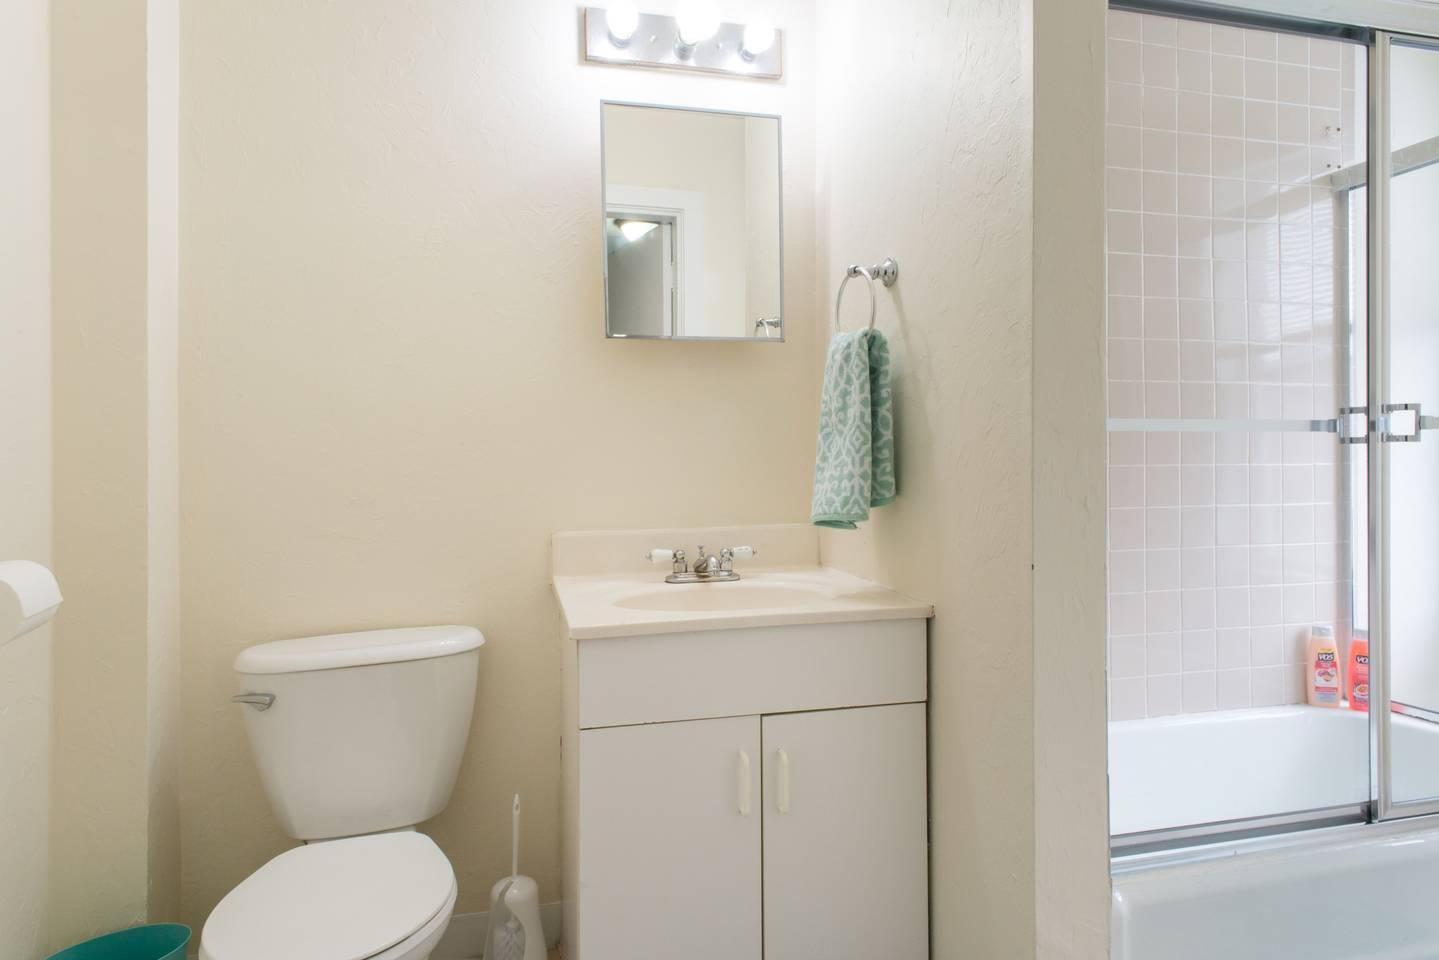 BOSTON AIRBNB SAVE $$$ ON STAY #1A photo 10552866